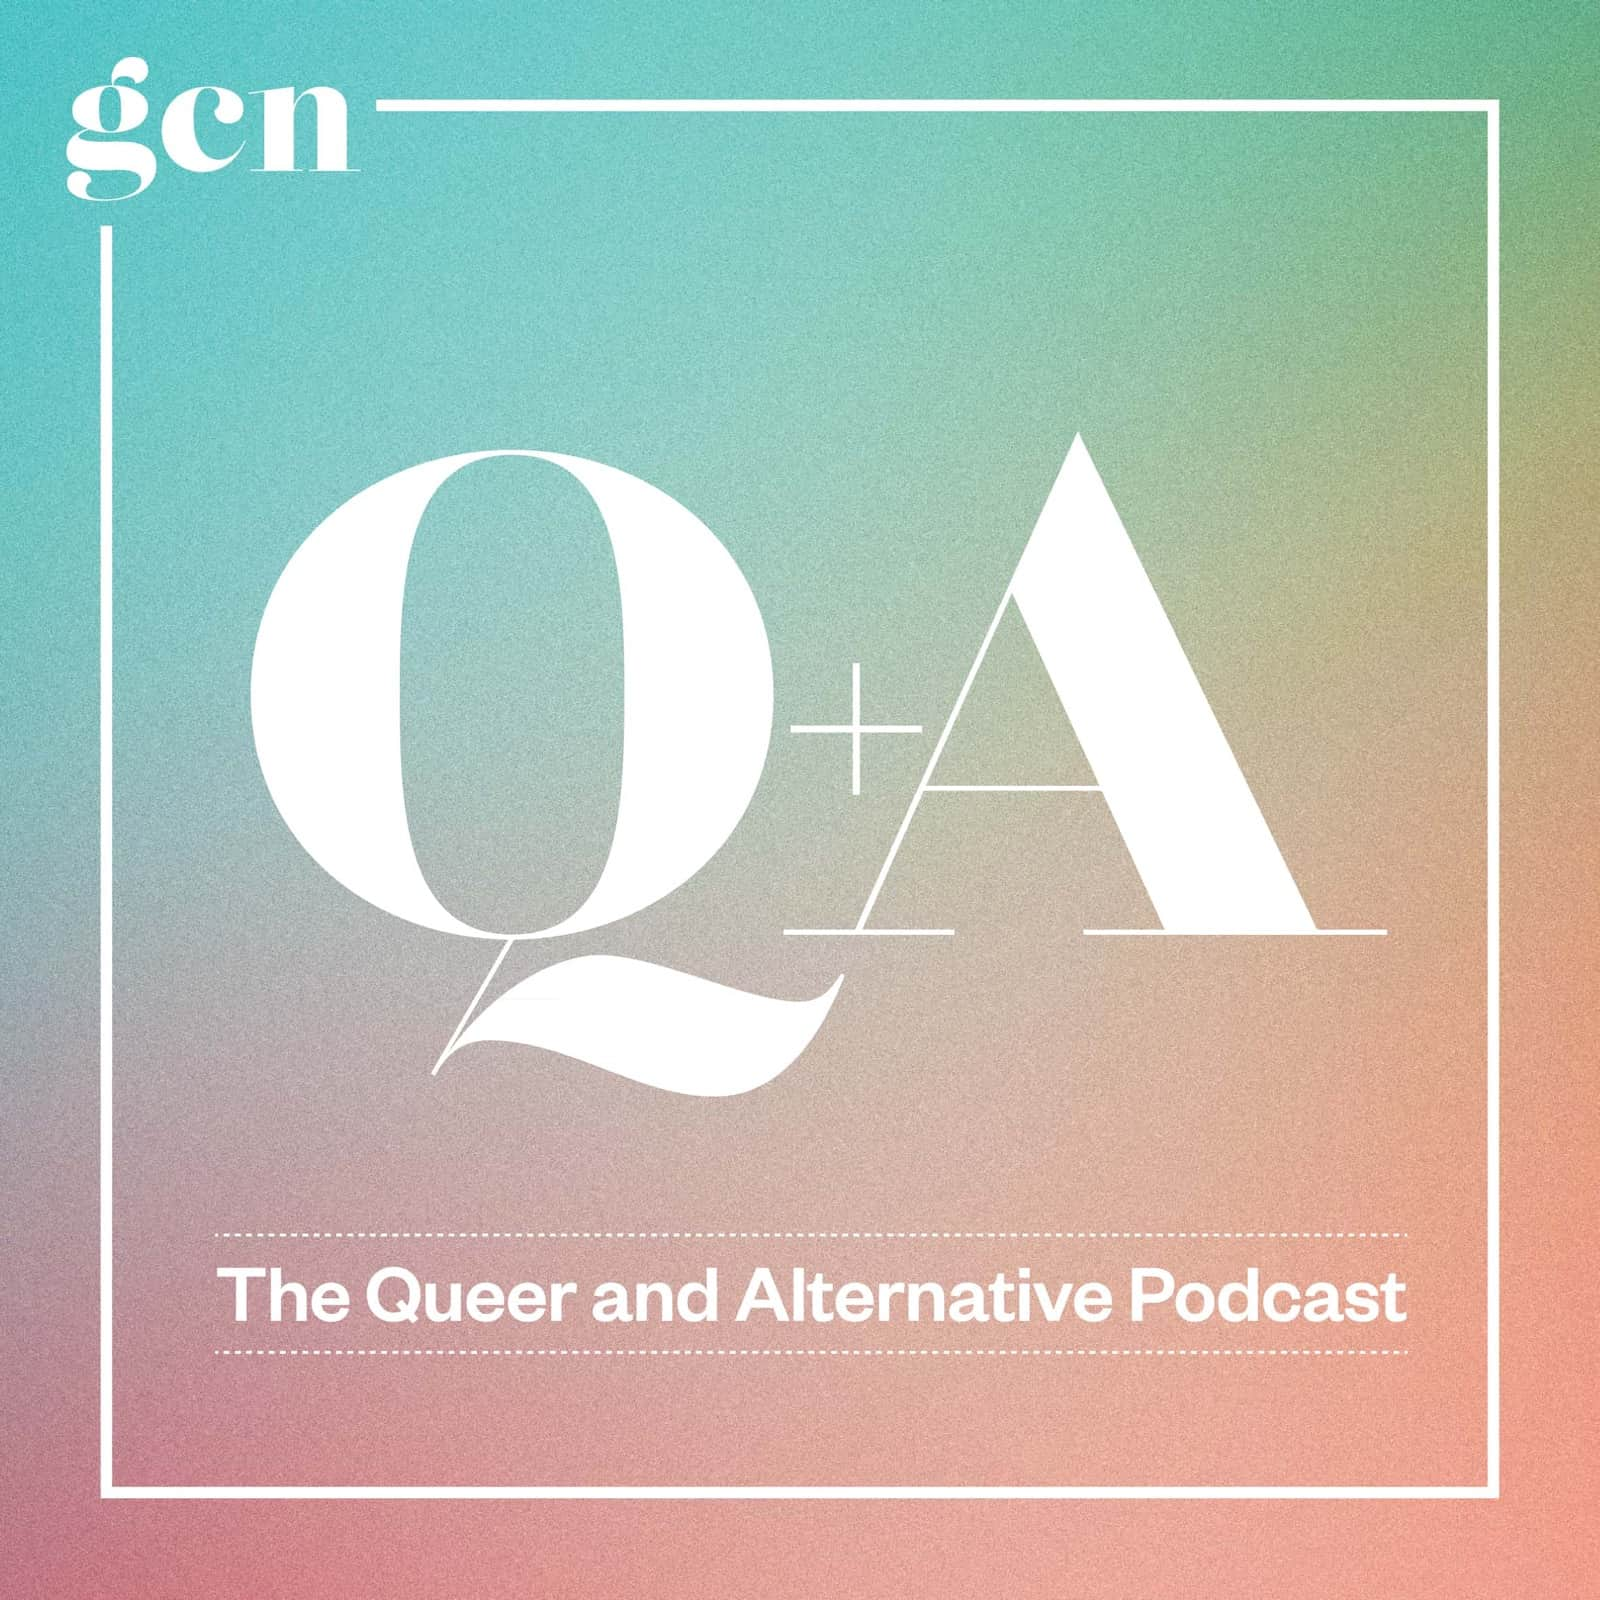 "Logo for GCN's Q&A podcast. The logo consists of white text that reads ""Q+A The Queer and Alternative Podcast"" inside a square box with a green and orange gradient."